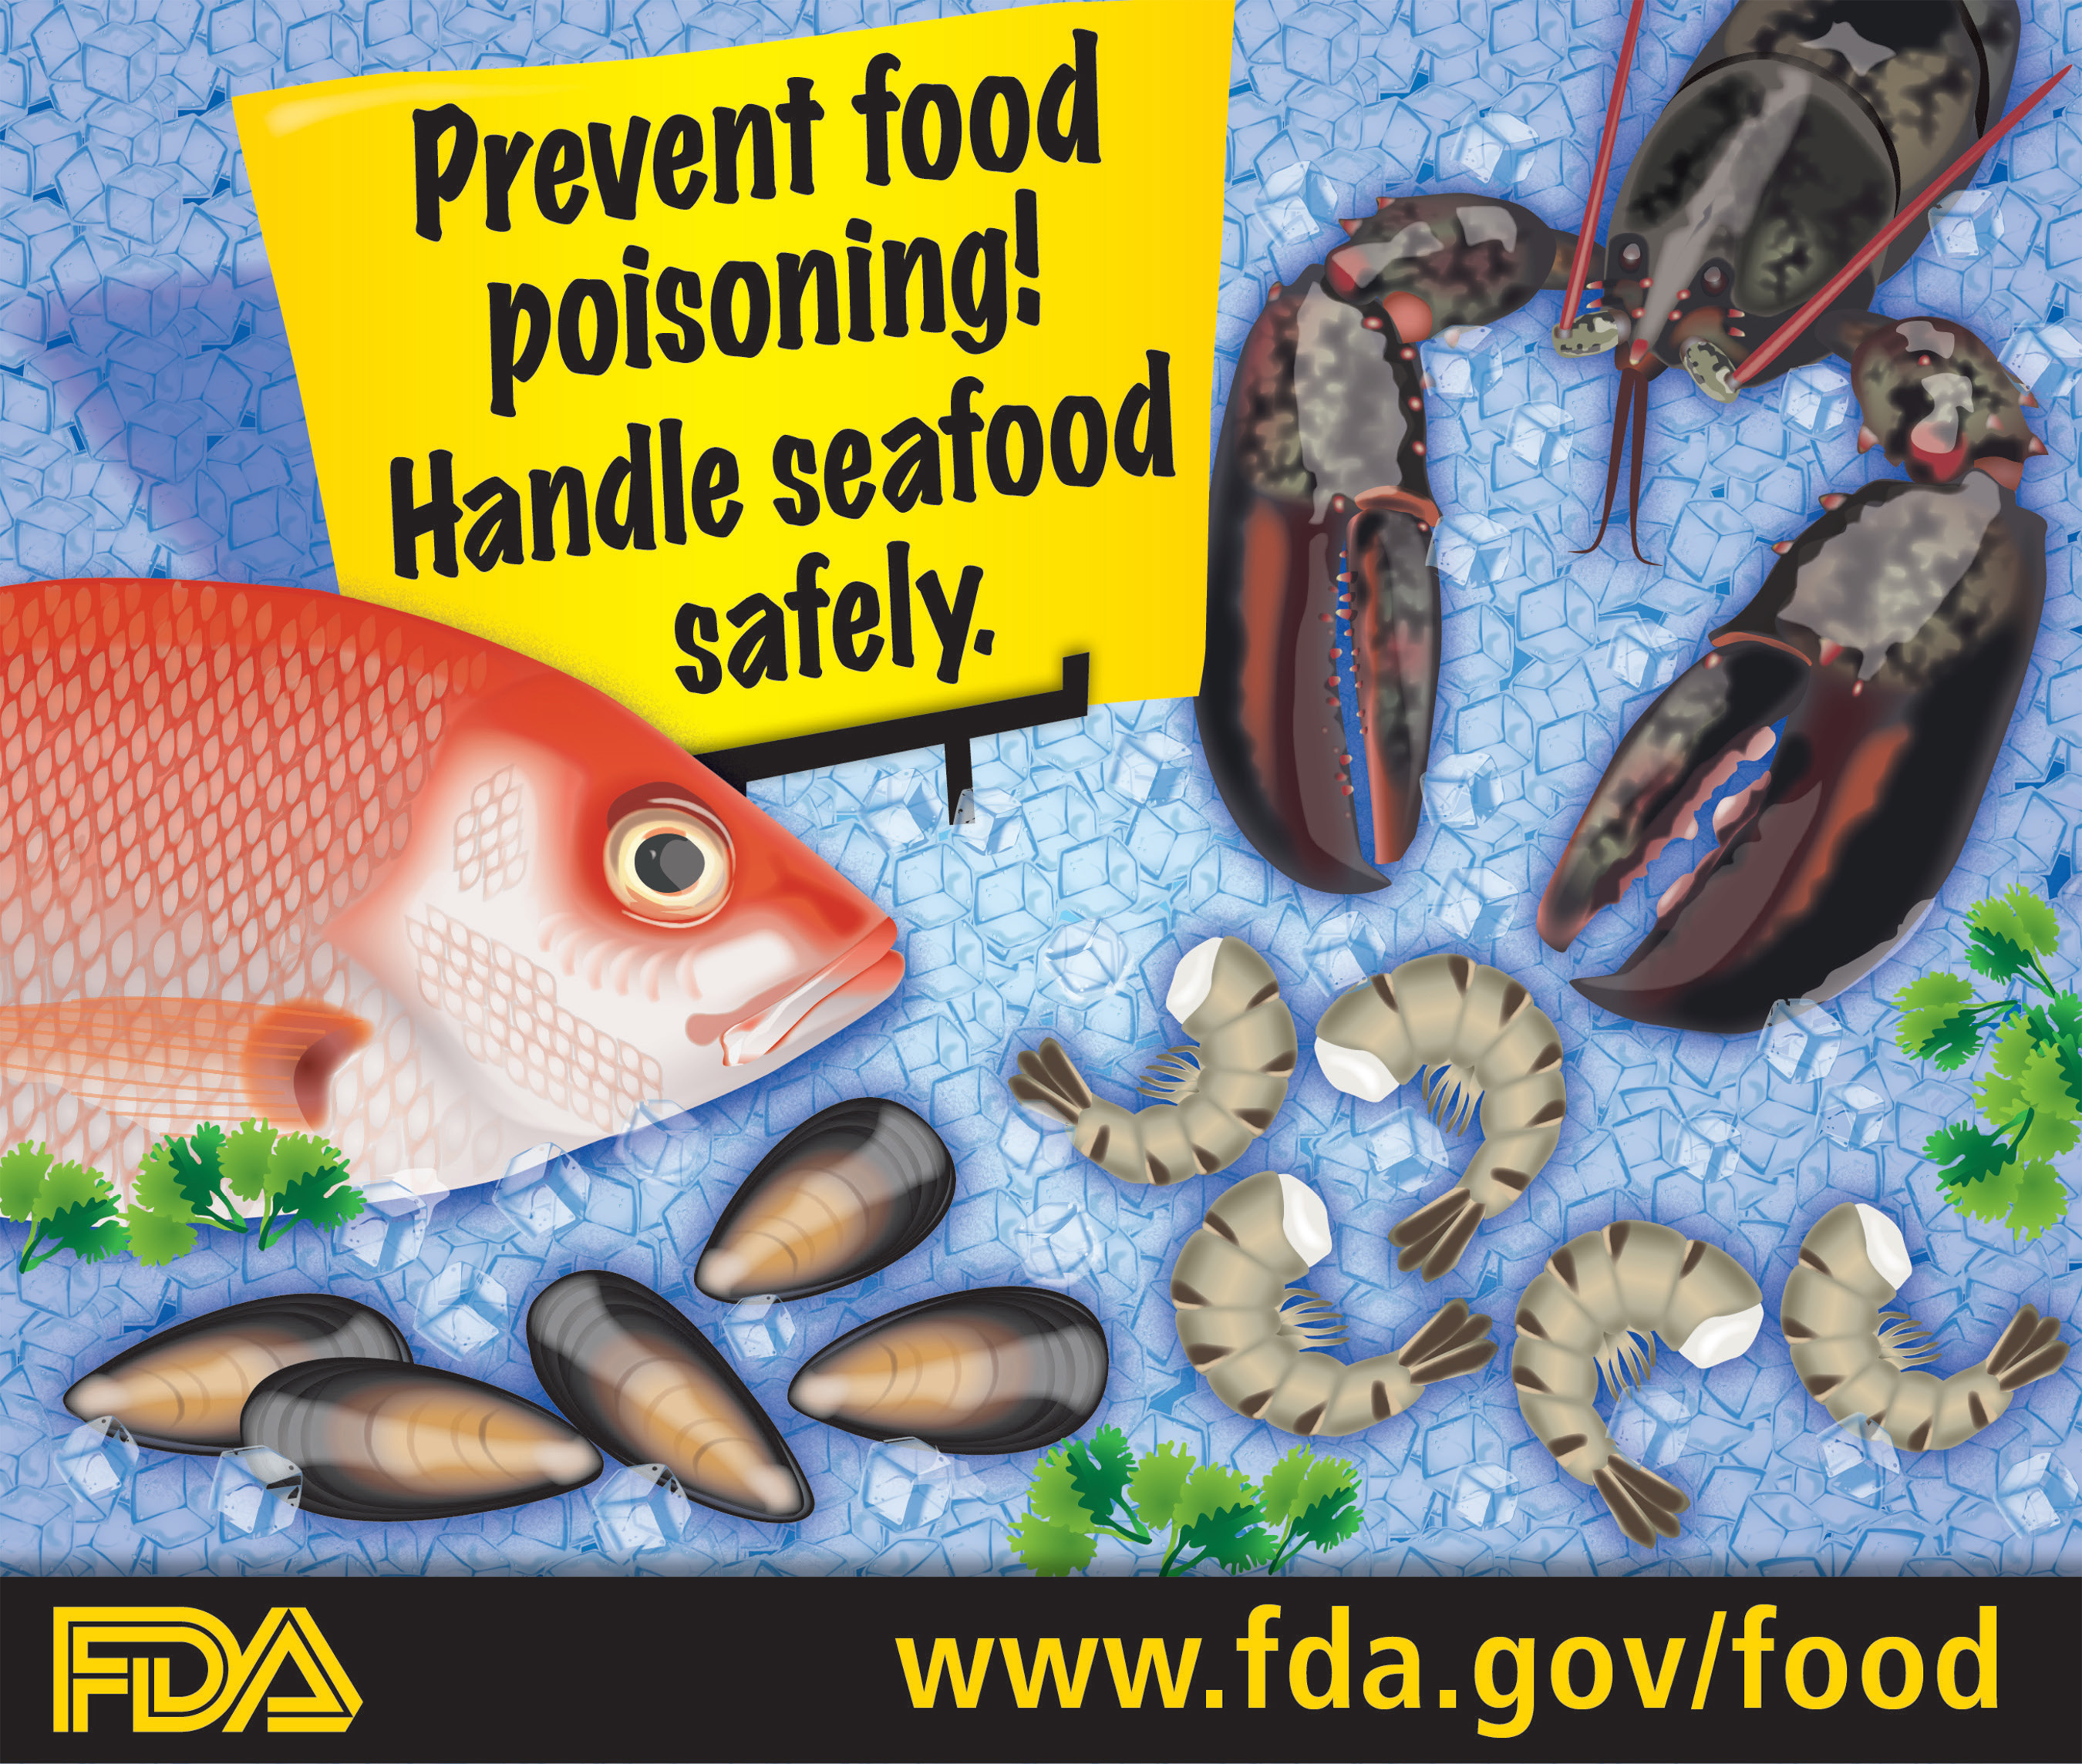 Seafood - Selecting and Serving It Safely